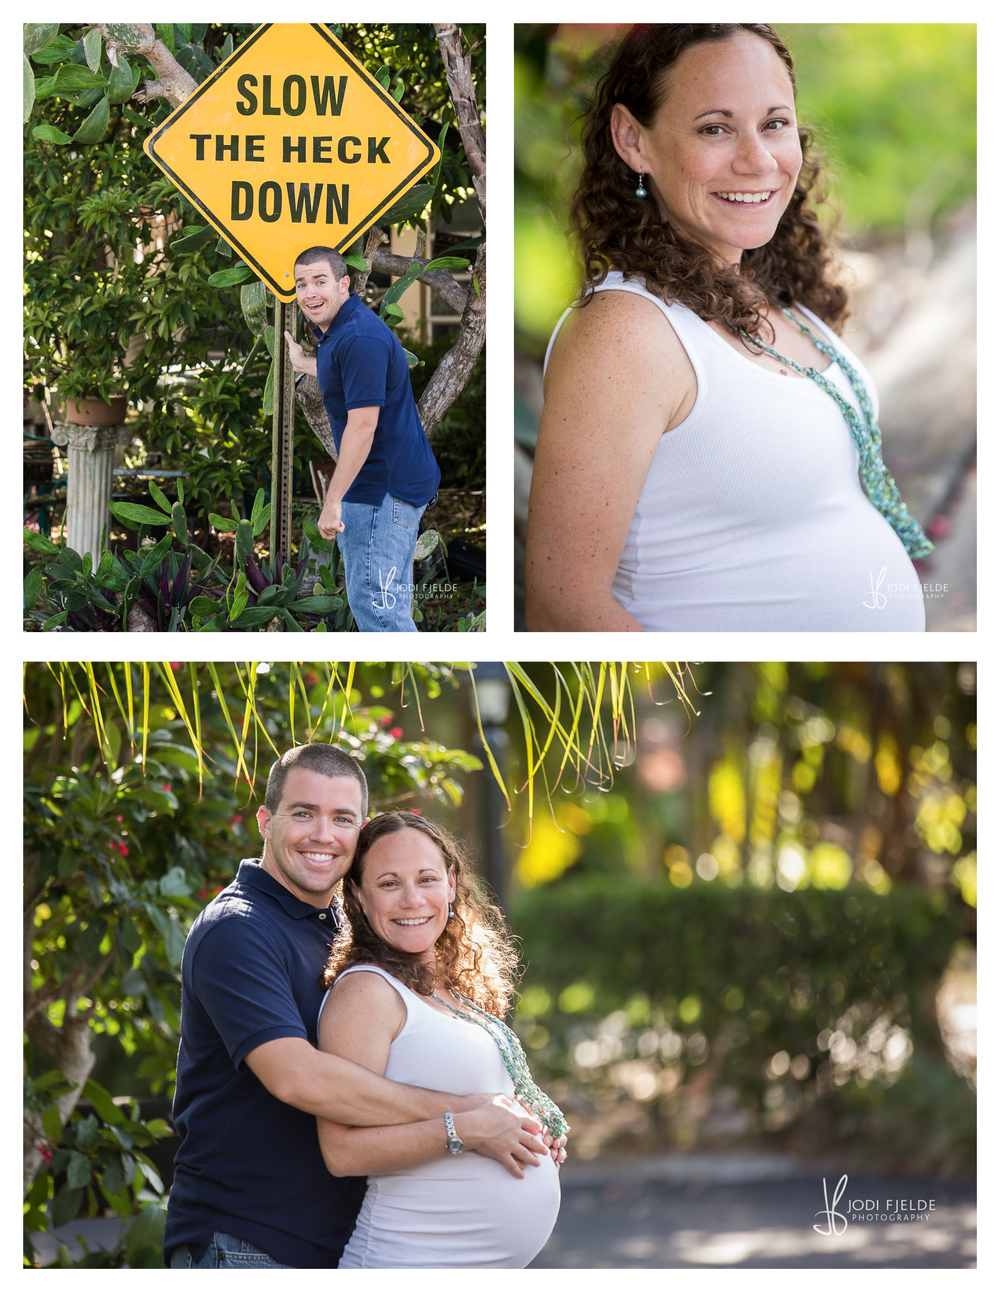 Boynton_Beach_lifestyle_maternity_photography_baby_girl_PARLAMENTO_jodi_Fjelde_photography_2.jpg